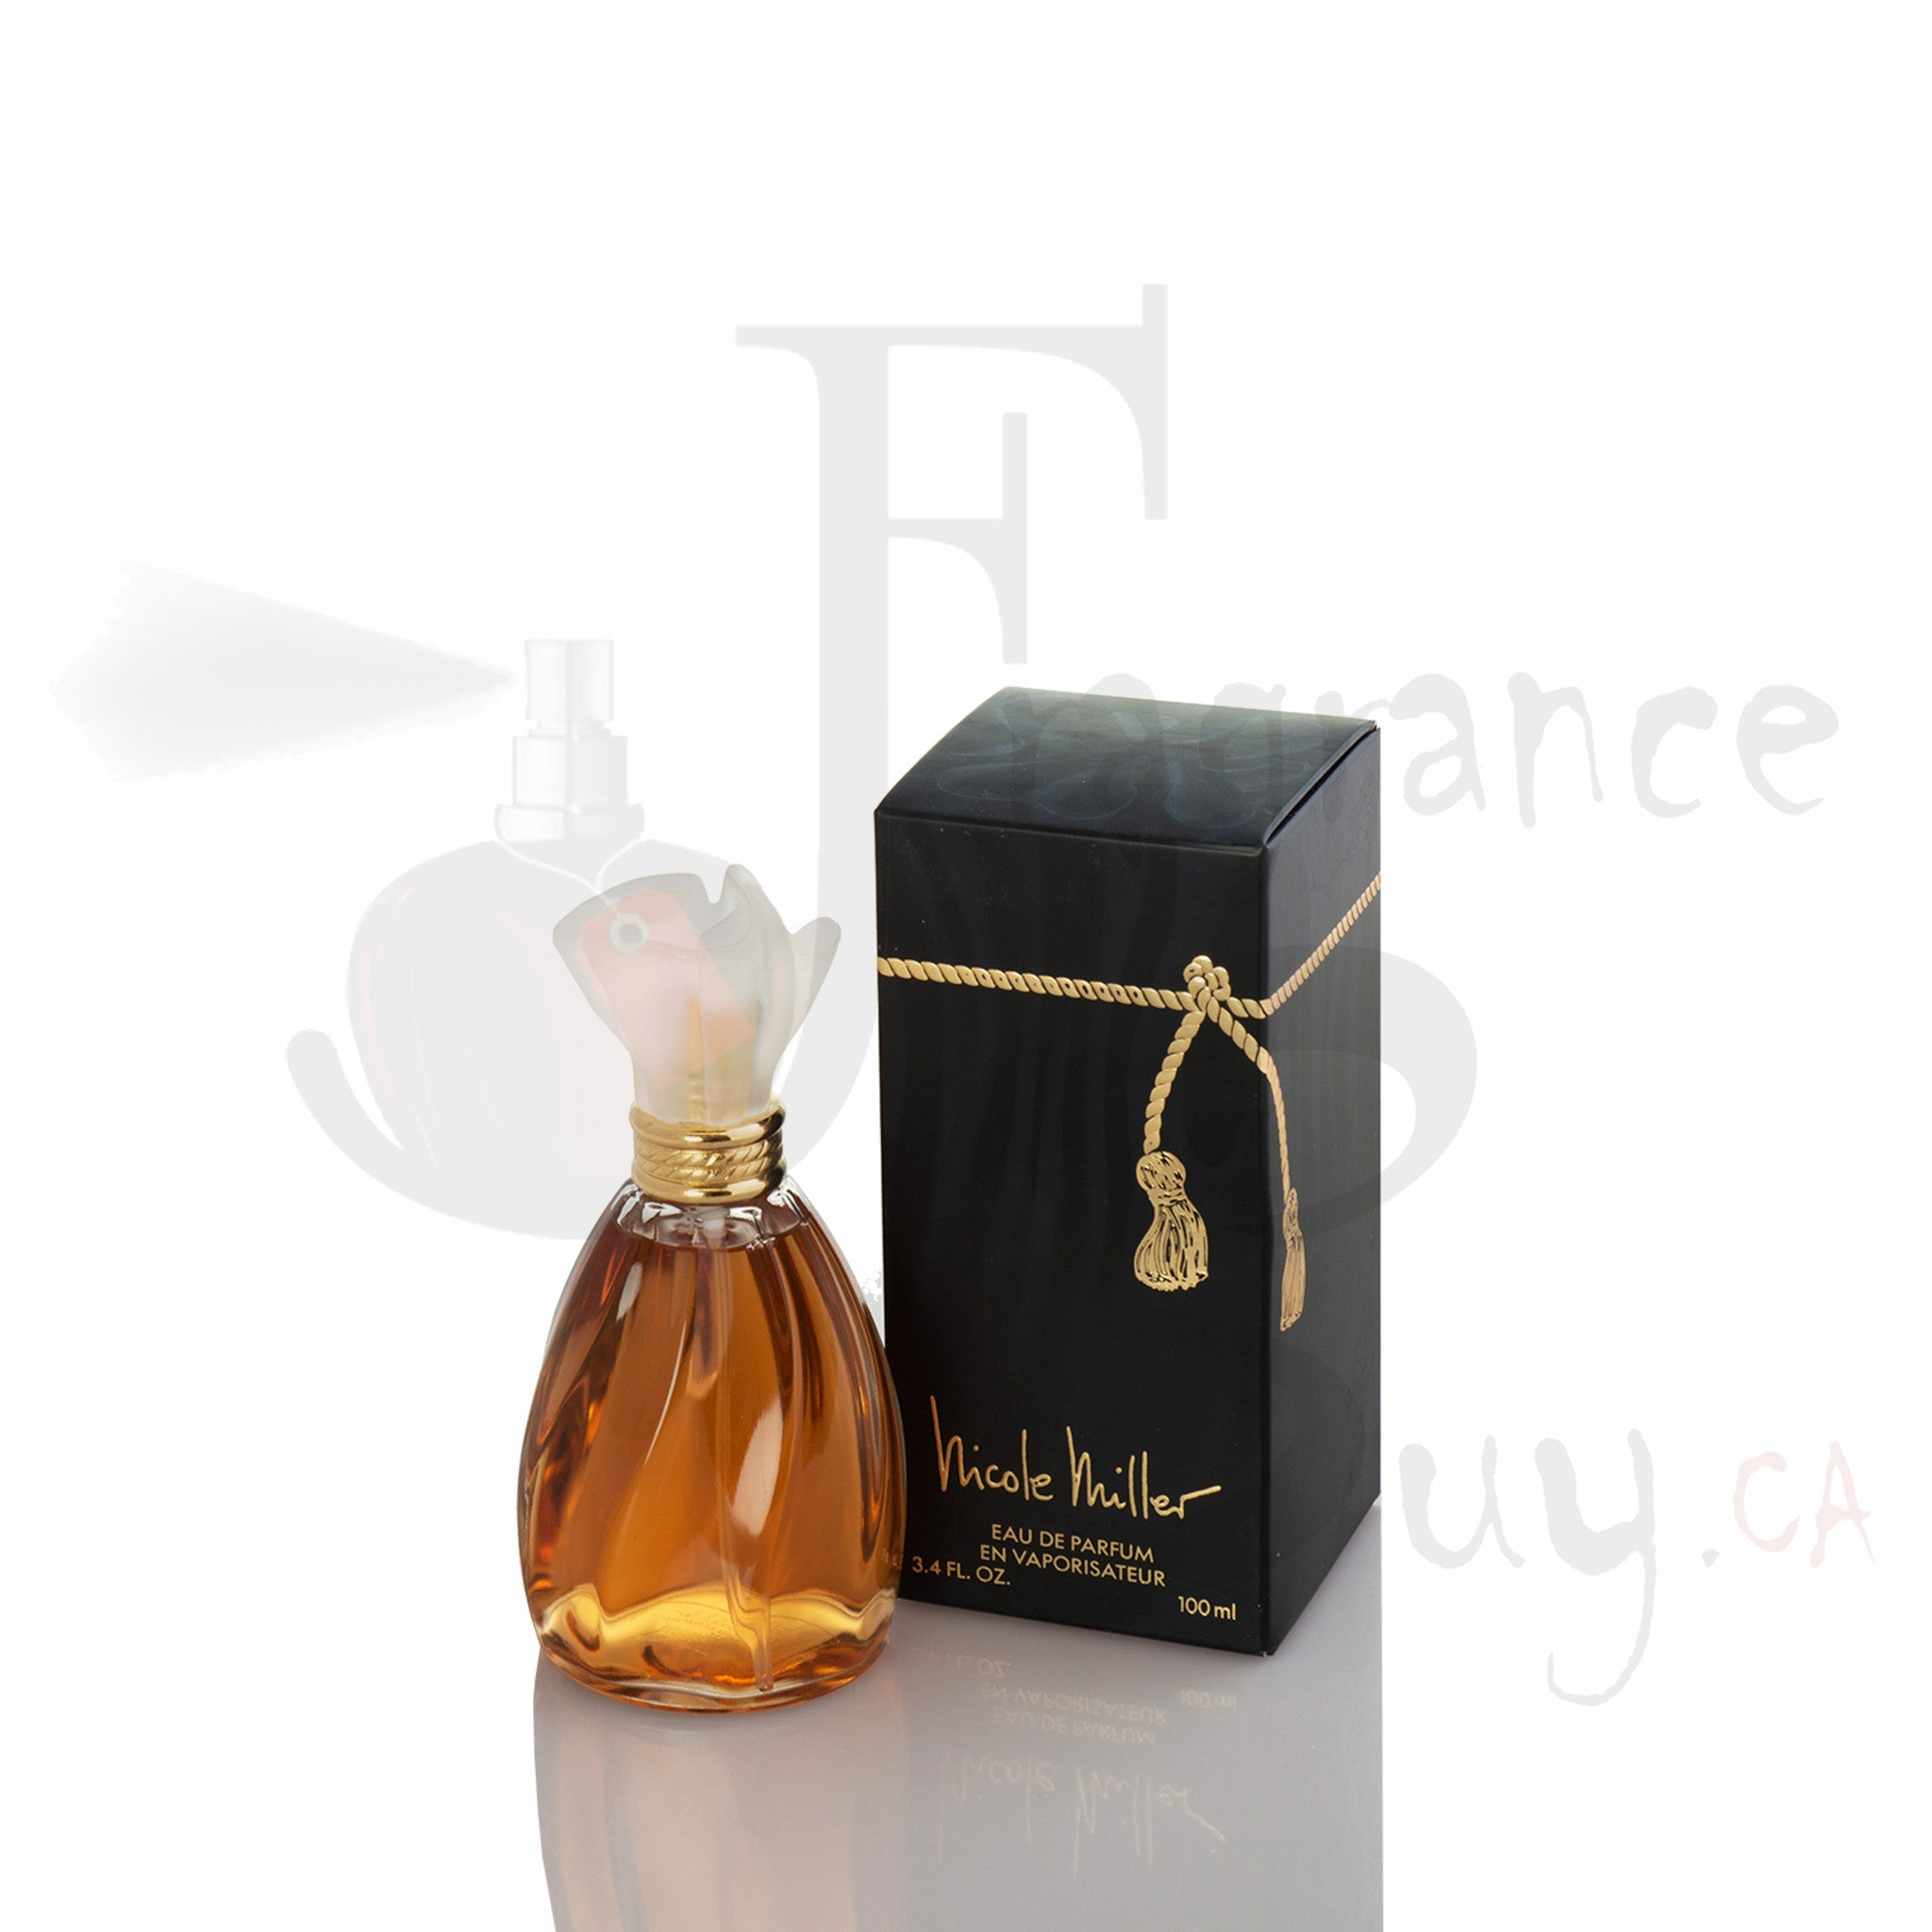 Nicole Miller Woman (Original Black Box) Fragrance